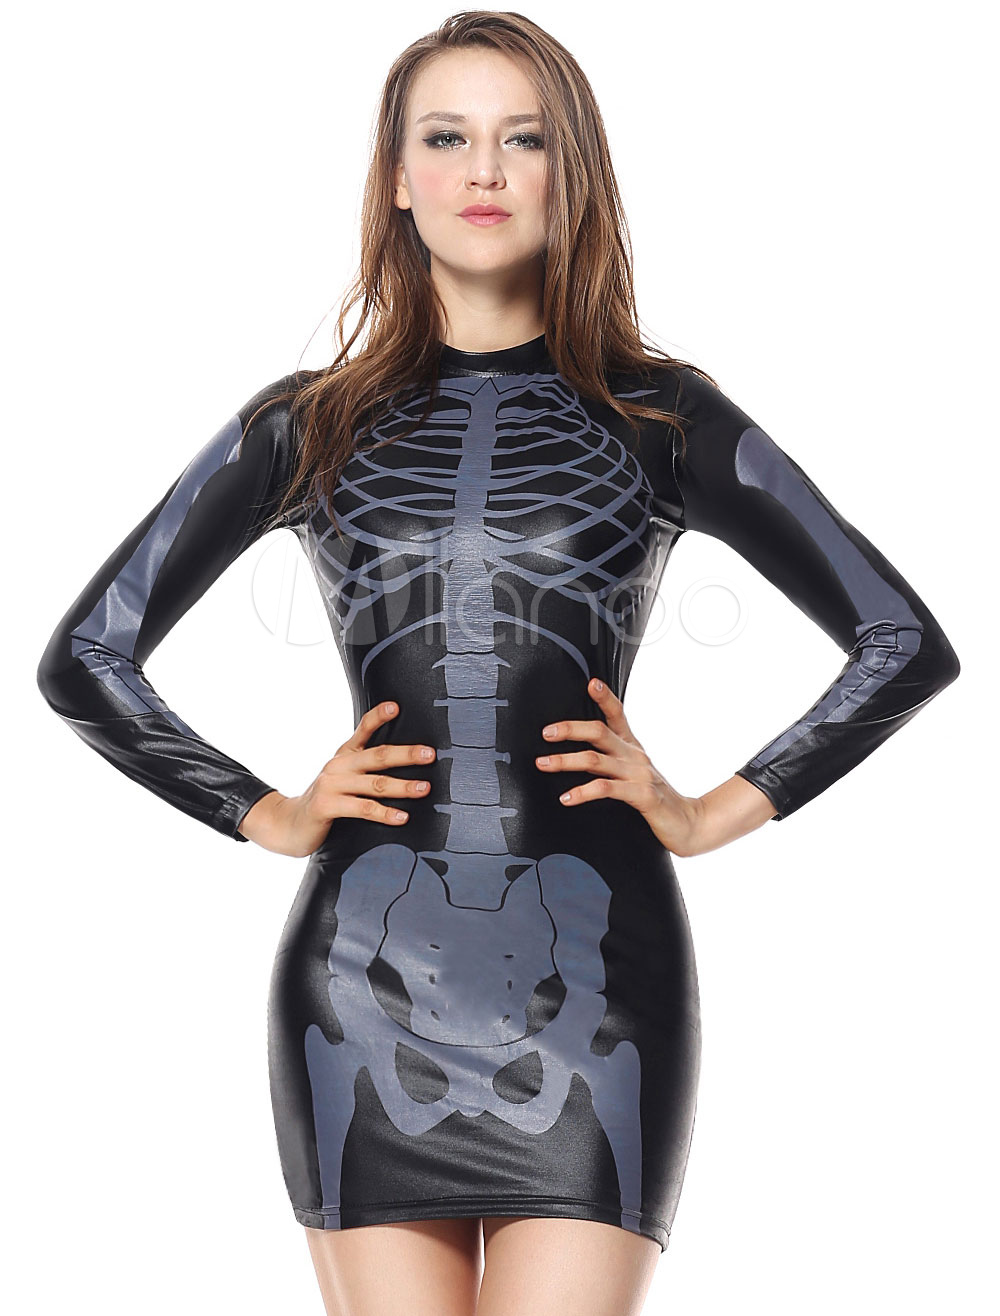 Buy Skeleton Costume Halloween Black Women Printed Tight Long Sleeve Short Dress Scary Costume for $17.09 in Milanoo store